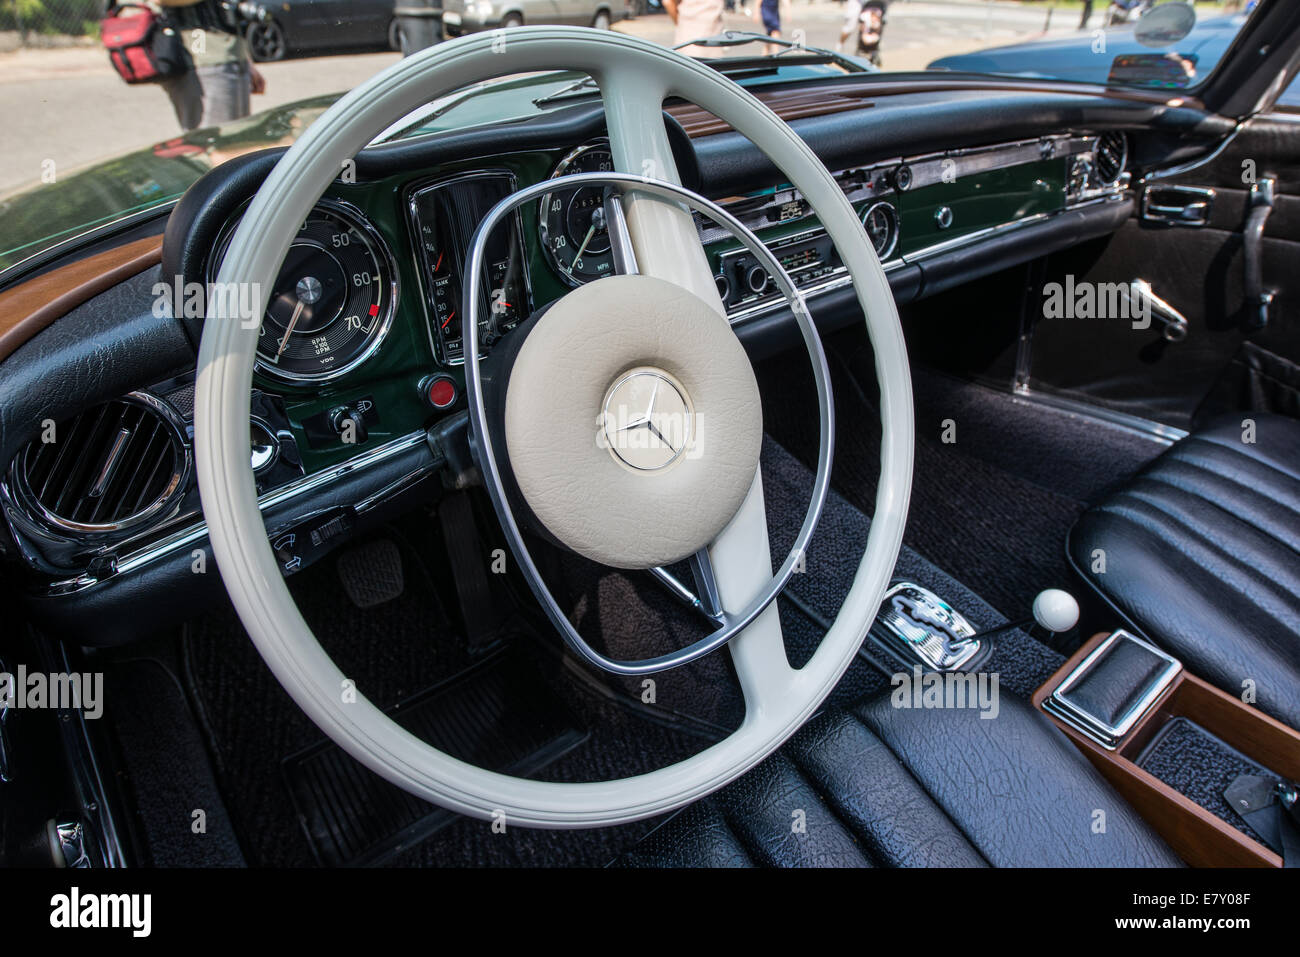 warsaw poland 27th july 2014 interior of mercedes benz w113 280 stock photo royalty free. Black Bedroom Furniture Sets. Home Design Ideas